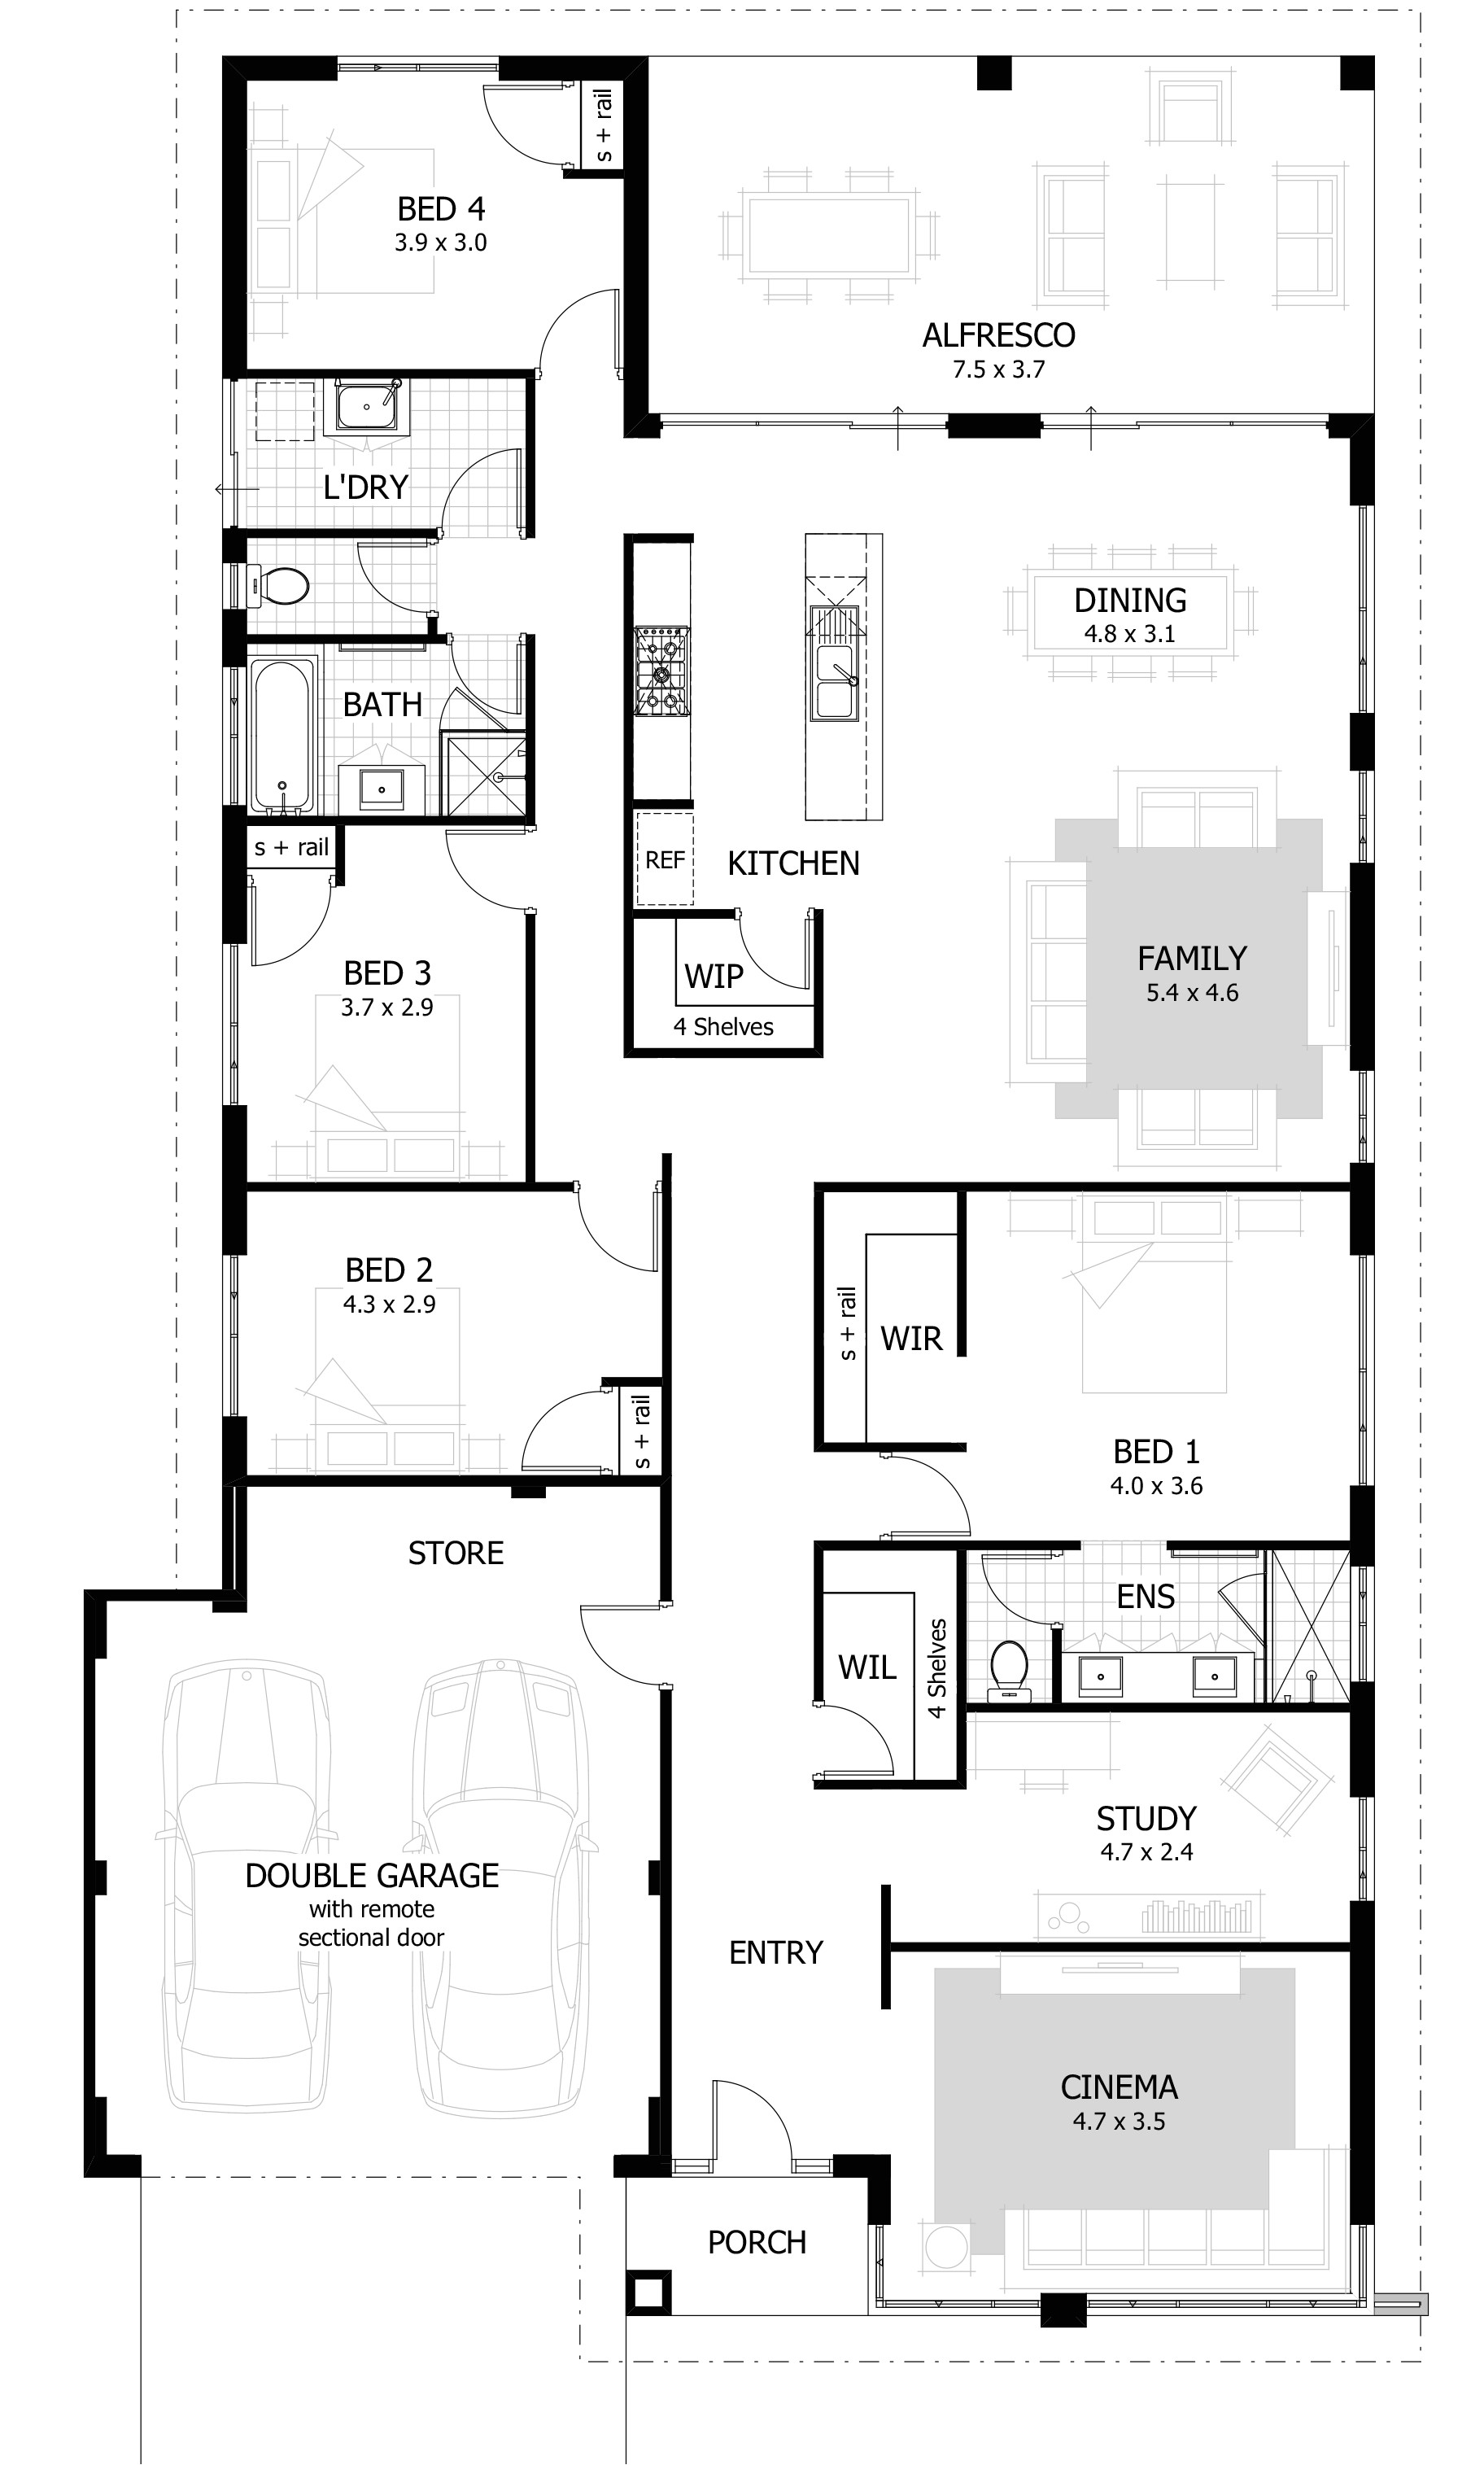 drummond house plans philippine house designs and floor plans for small houses house plans with elevations and floor plans